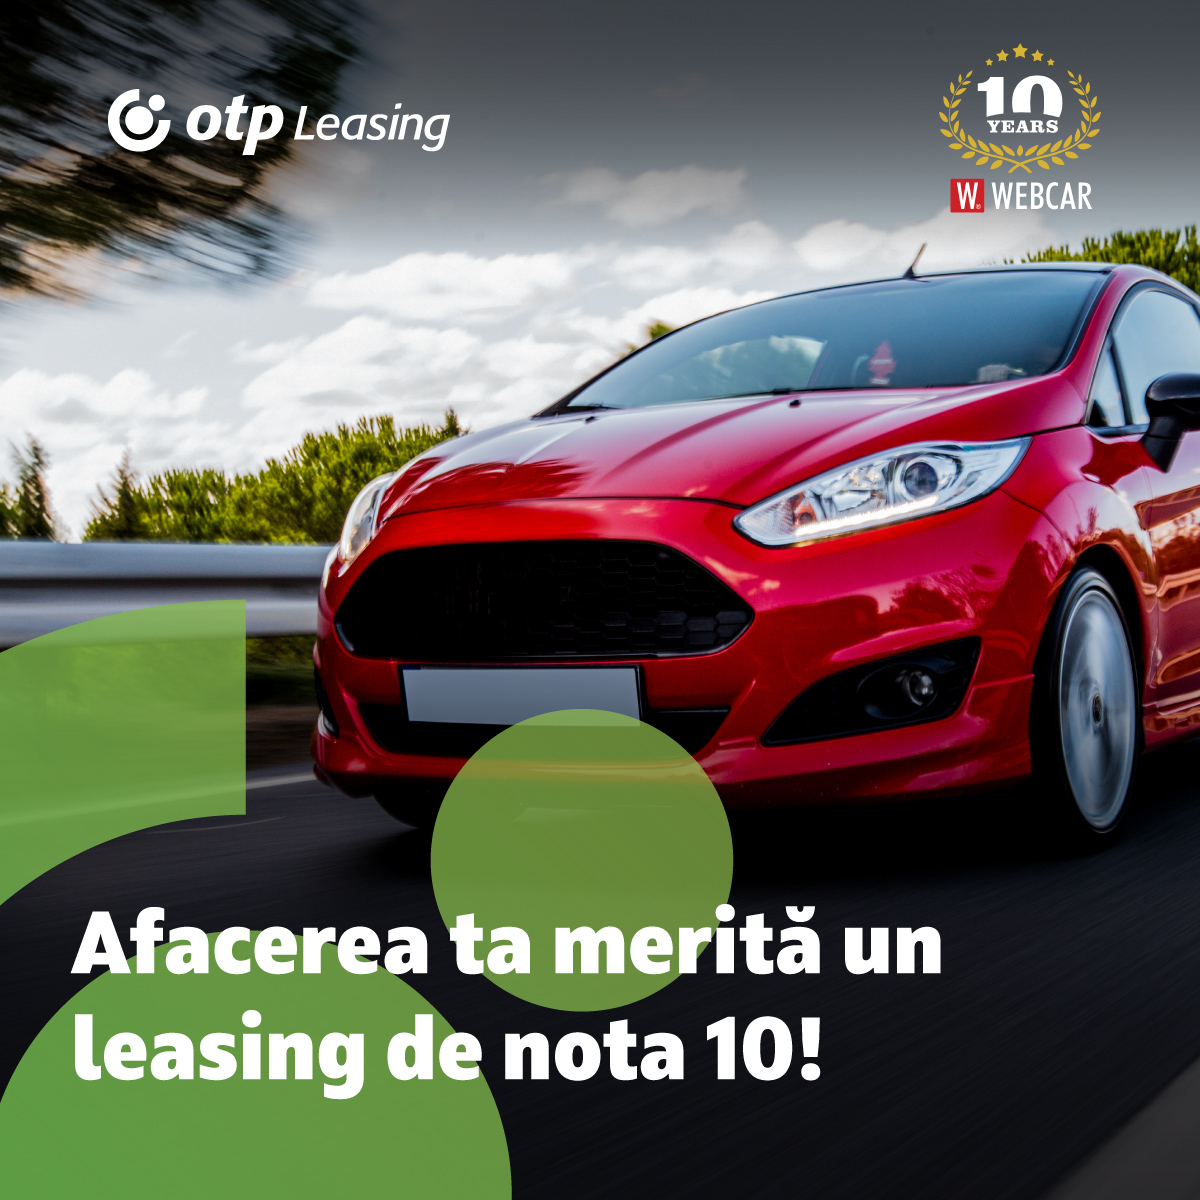 OTP Leasing and WEBCAR